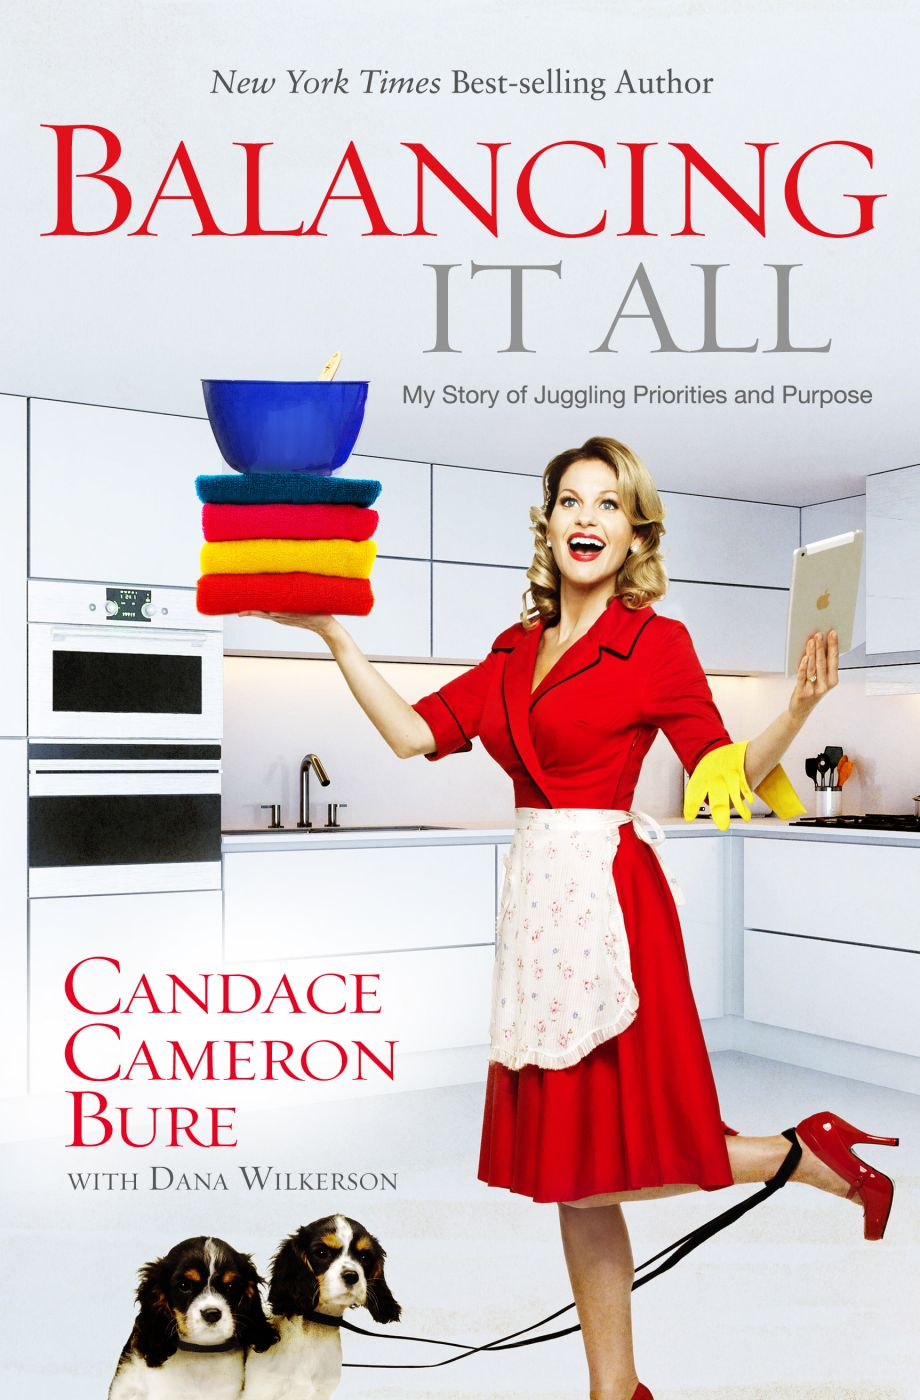 How does Candace Cameron Bure balance her work, family, and life? Find out in this exclusive Q&A.